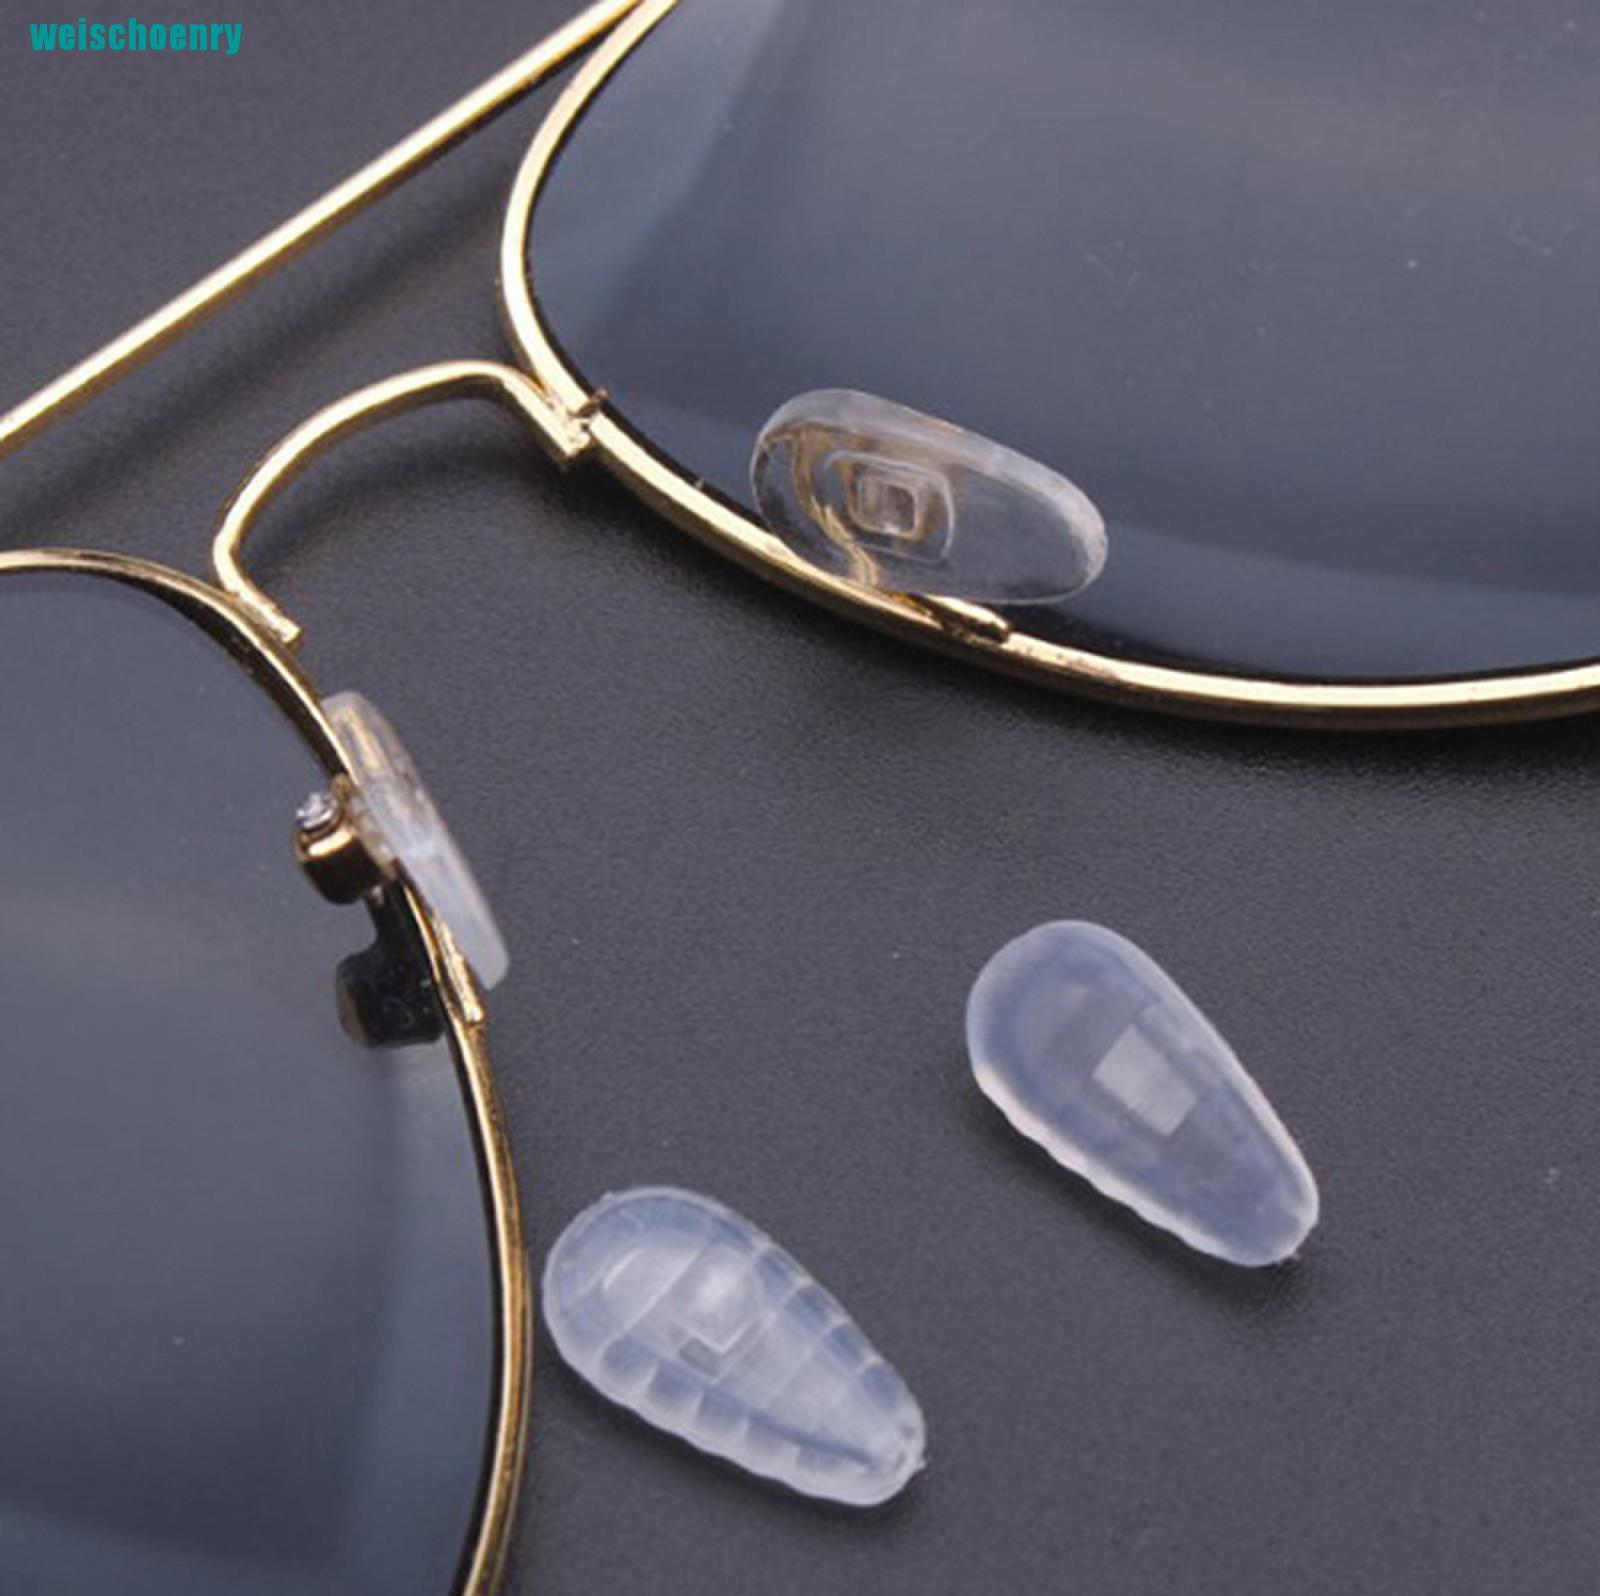 ry●10*Silicone Air Chamber Nose Pads For Glasses Eyeglasses Sunglasses Screw Push